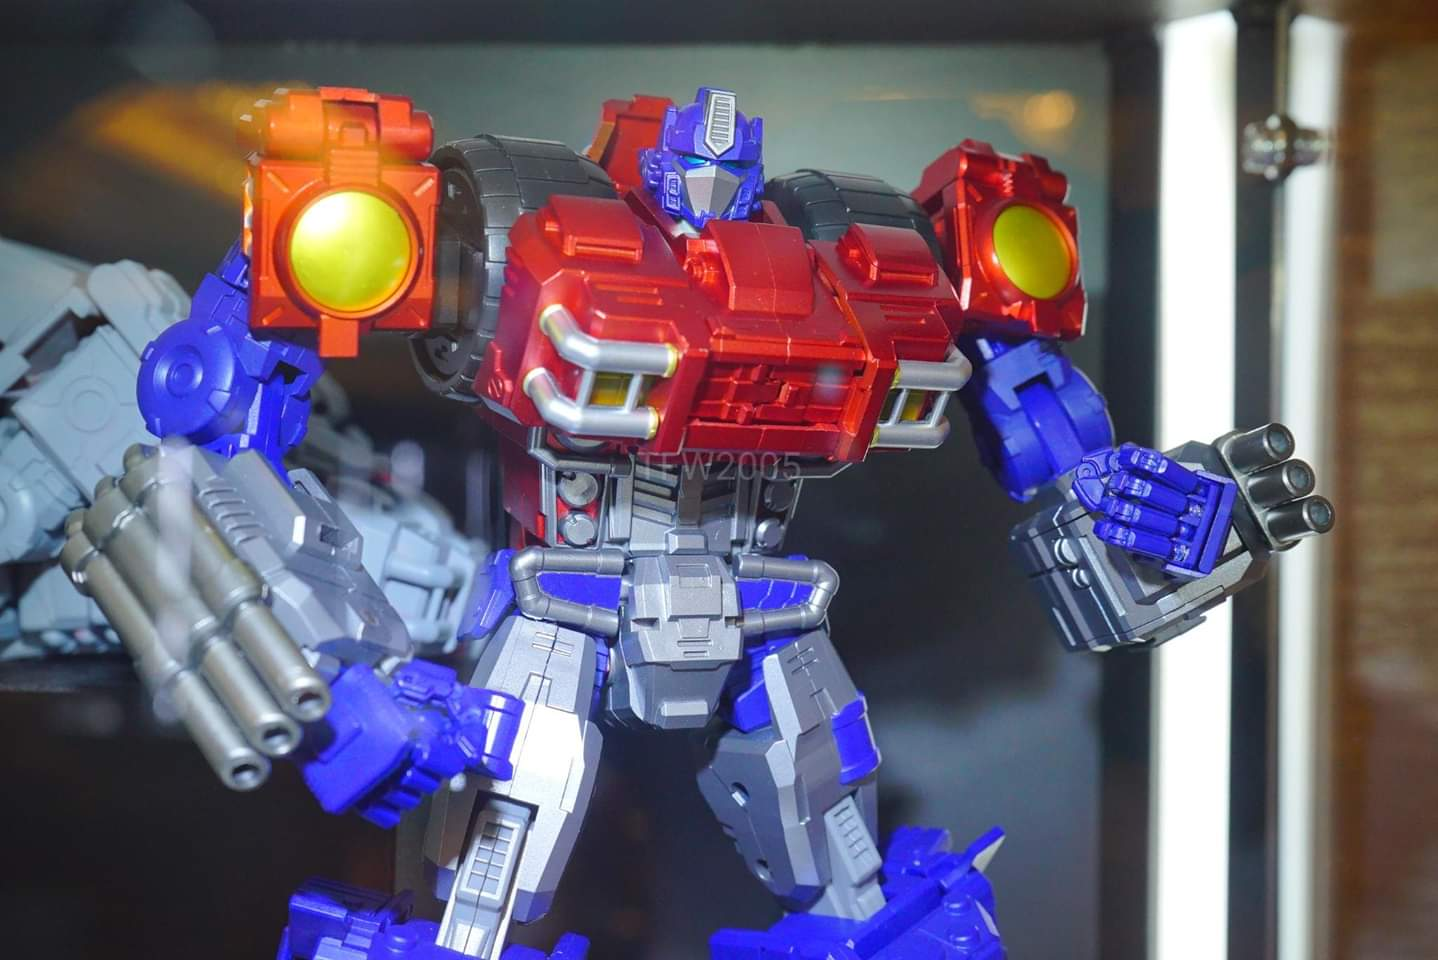 [Civil Warrior] Produit Tiers - General Grant - aka Optimus War Within IDW KqBw2UVm_o